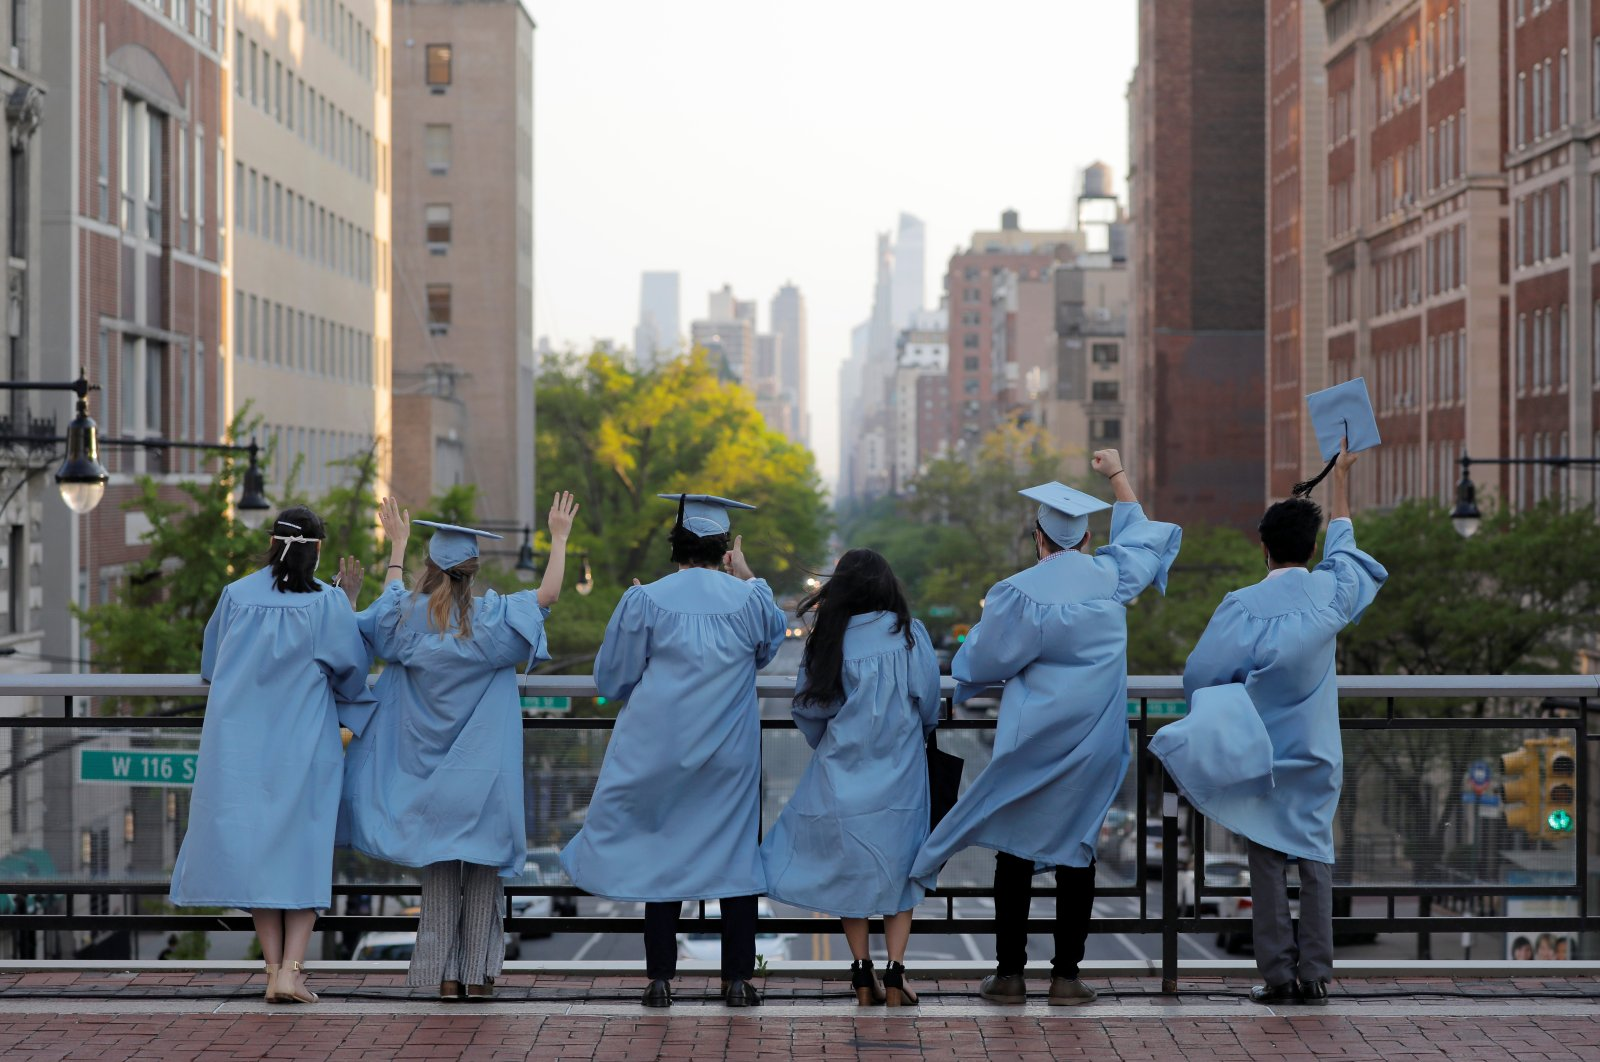 Master's students from the Columbia University Graduate School of Architecture, Planning and Preservation (GSAPP) wave to passing traffic from an overpass the day before their graduation ceremony, which is to be held online due to the outbreak of the coronavirus disease in Manhattan, New York City, U.S., May 15, 2020. (Reuters Photo)